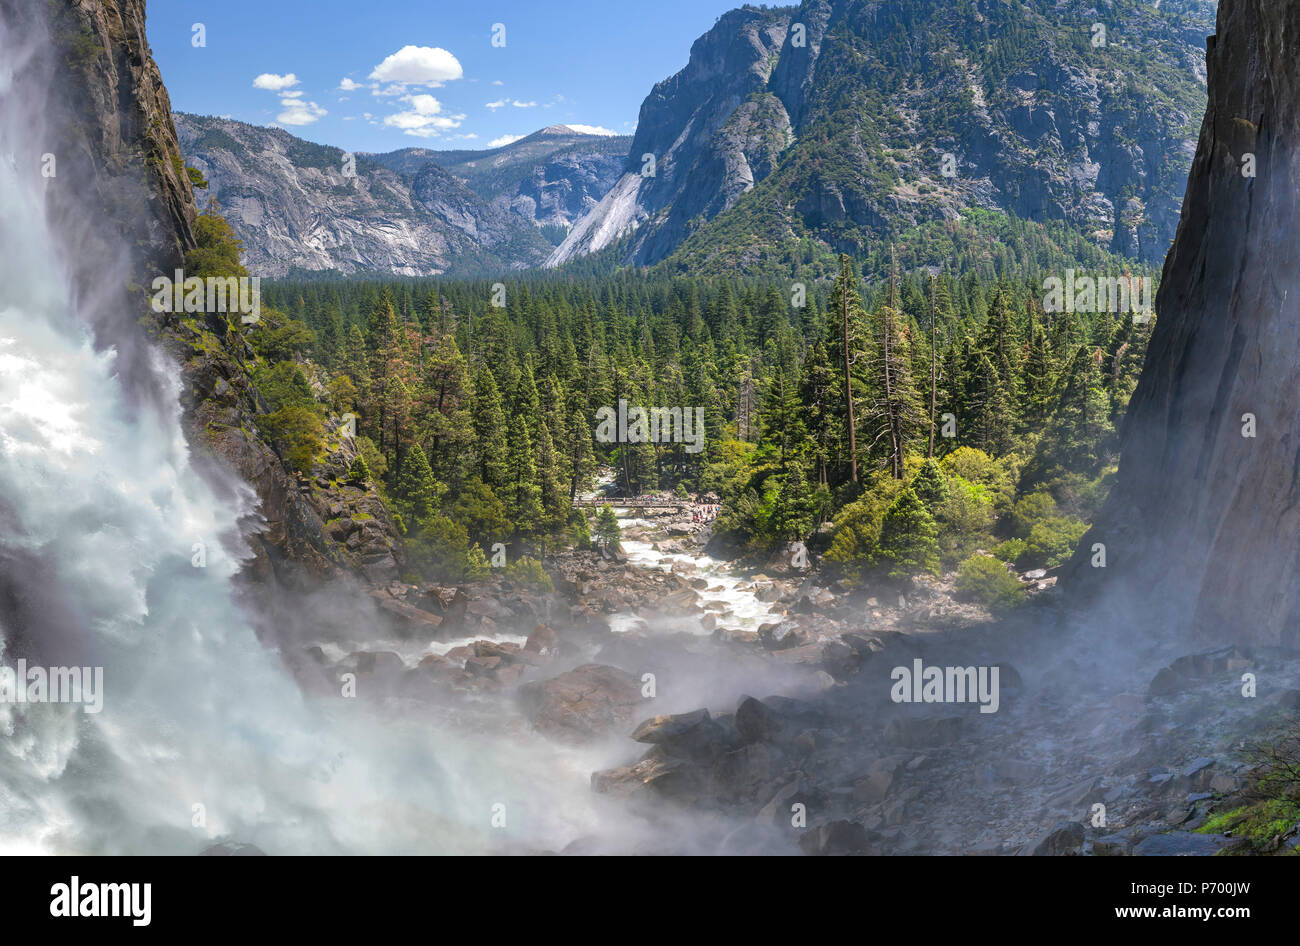 Lower Yosemite Falls Panorama - Stock Image